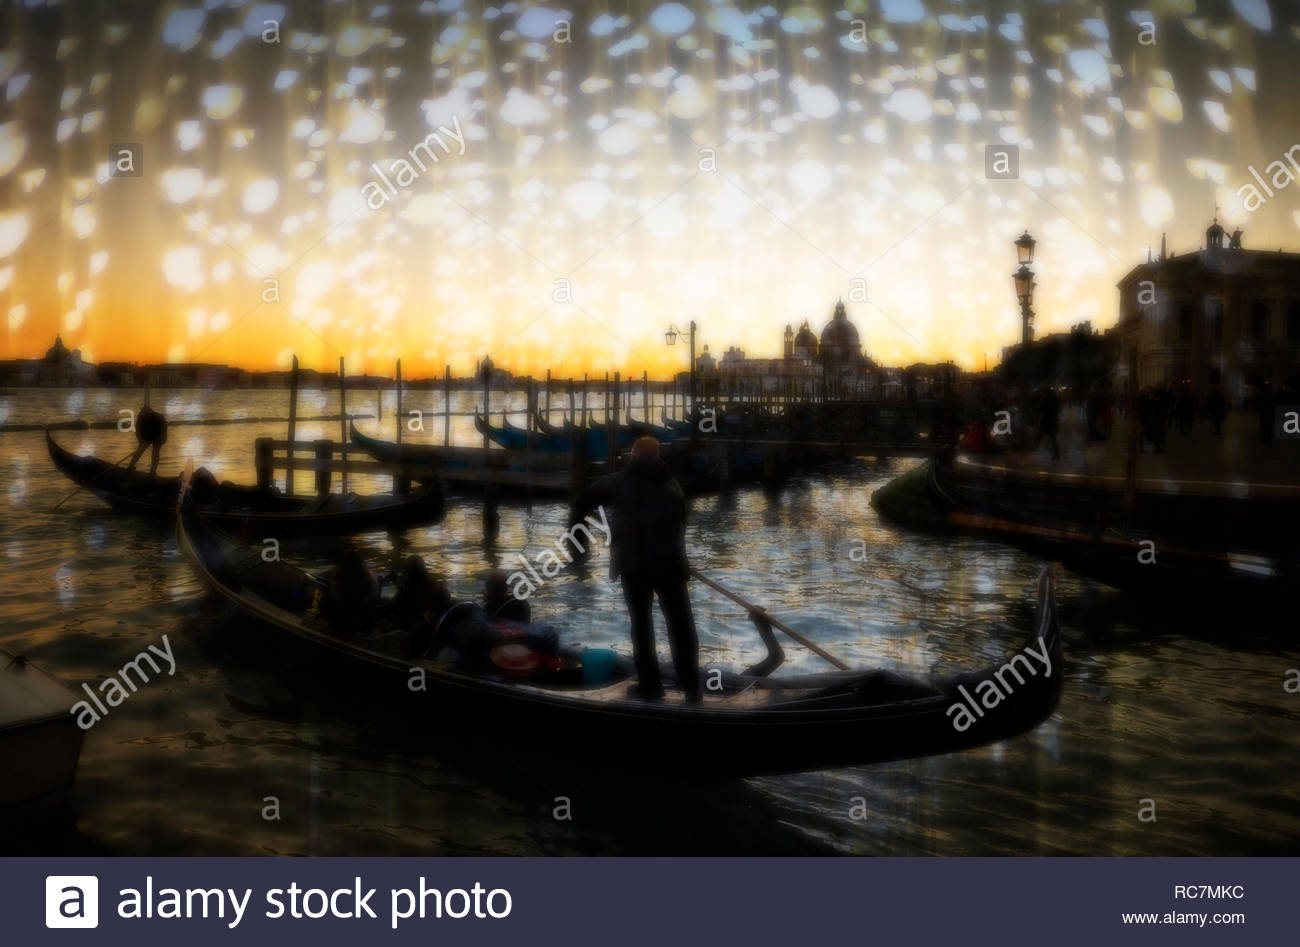 Atmospheric mood in Venice, Italy. - Stock Image